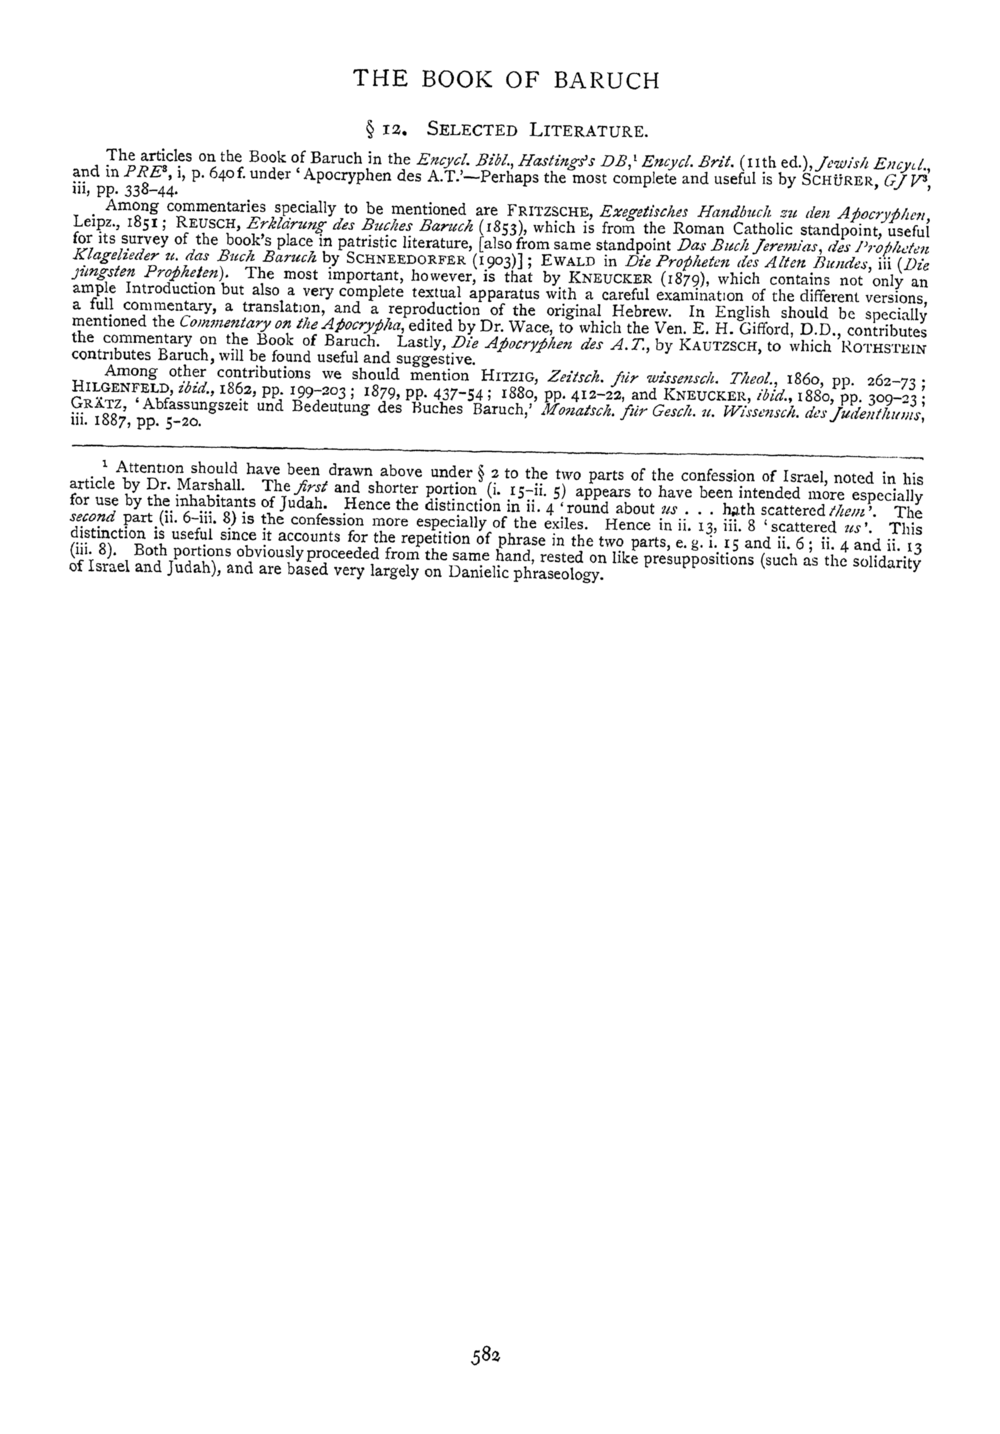 Image of page 582